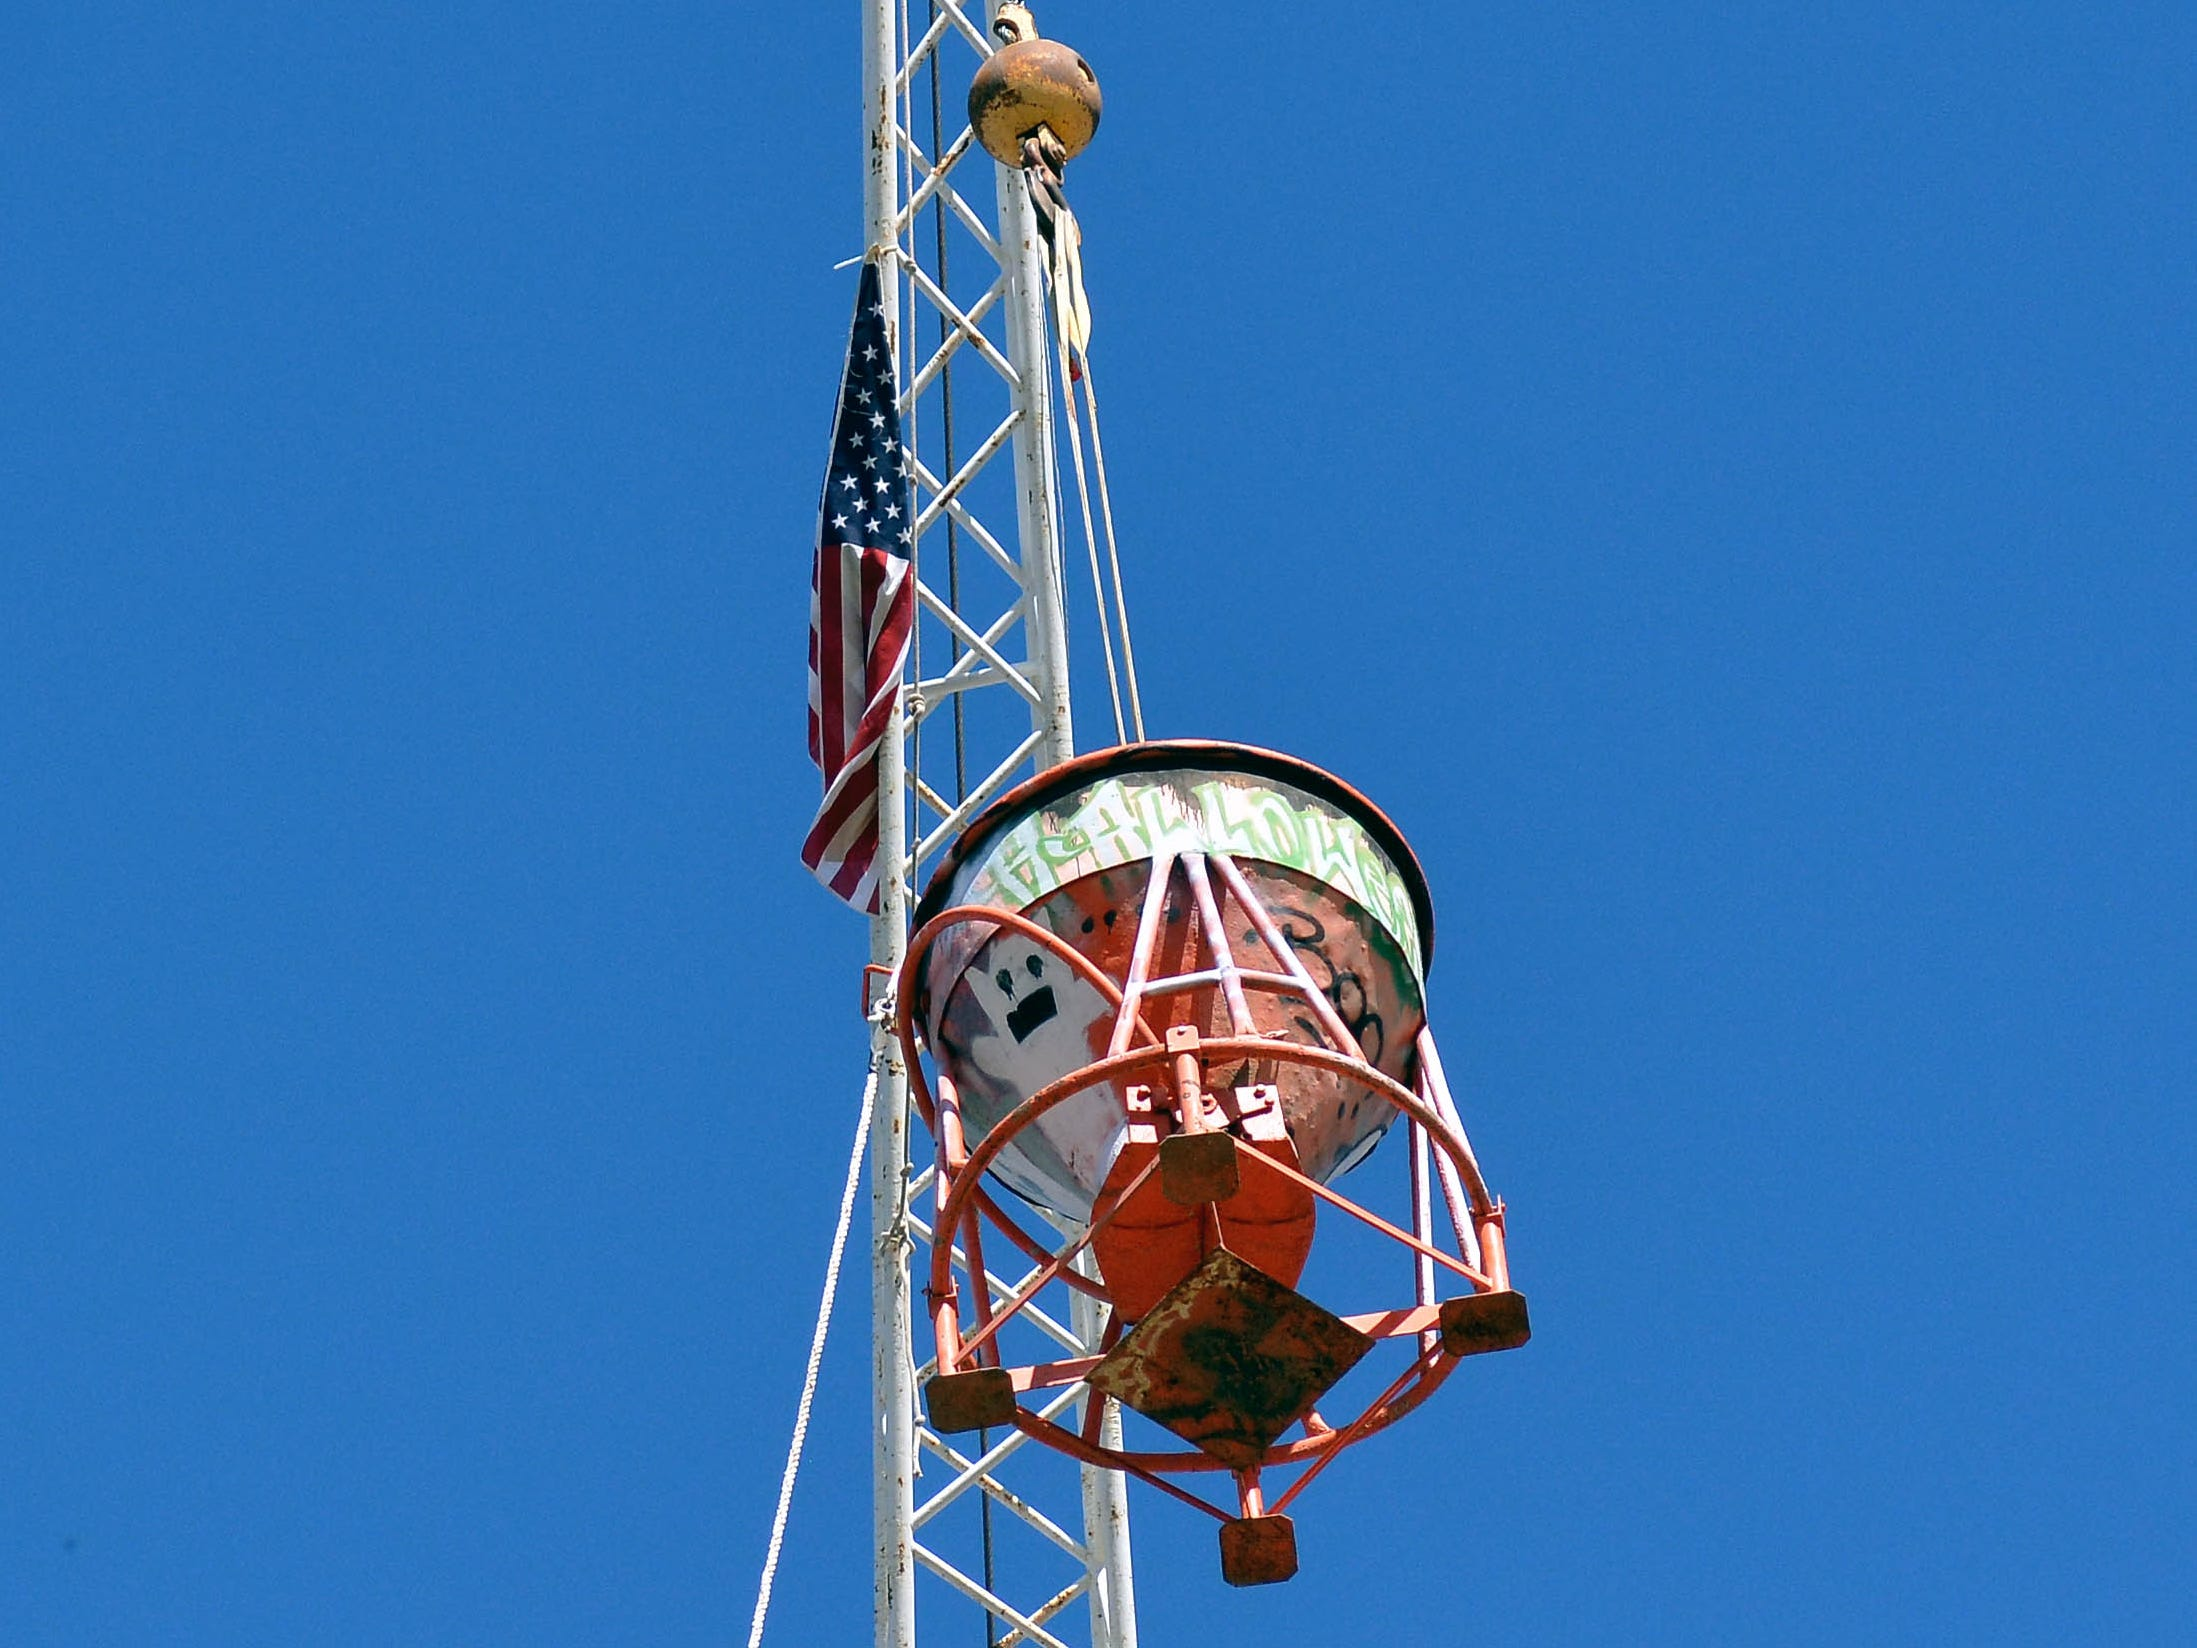 Cranes hoist tanks filled with treat ready to drop from 70 feet up in the air during the 14th annual Great Pumpkin Candy Drop, held Sunday, Oct, 28 at Maag Park.